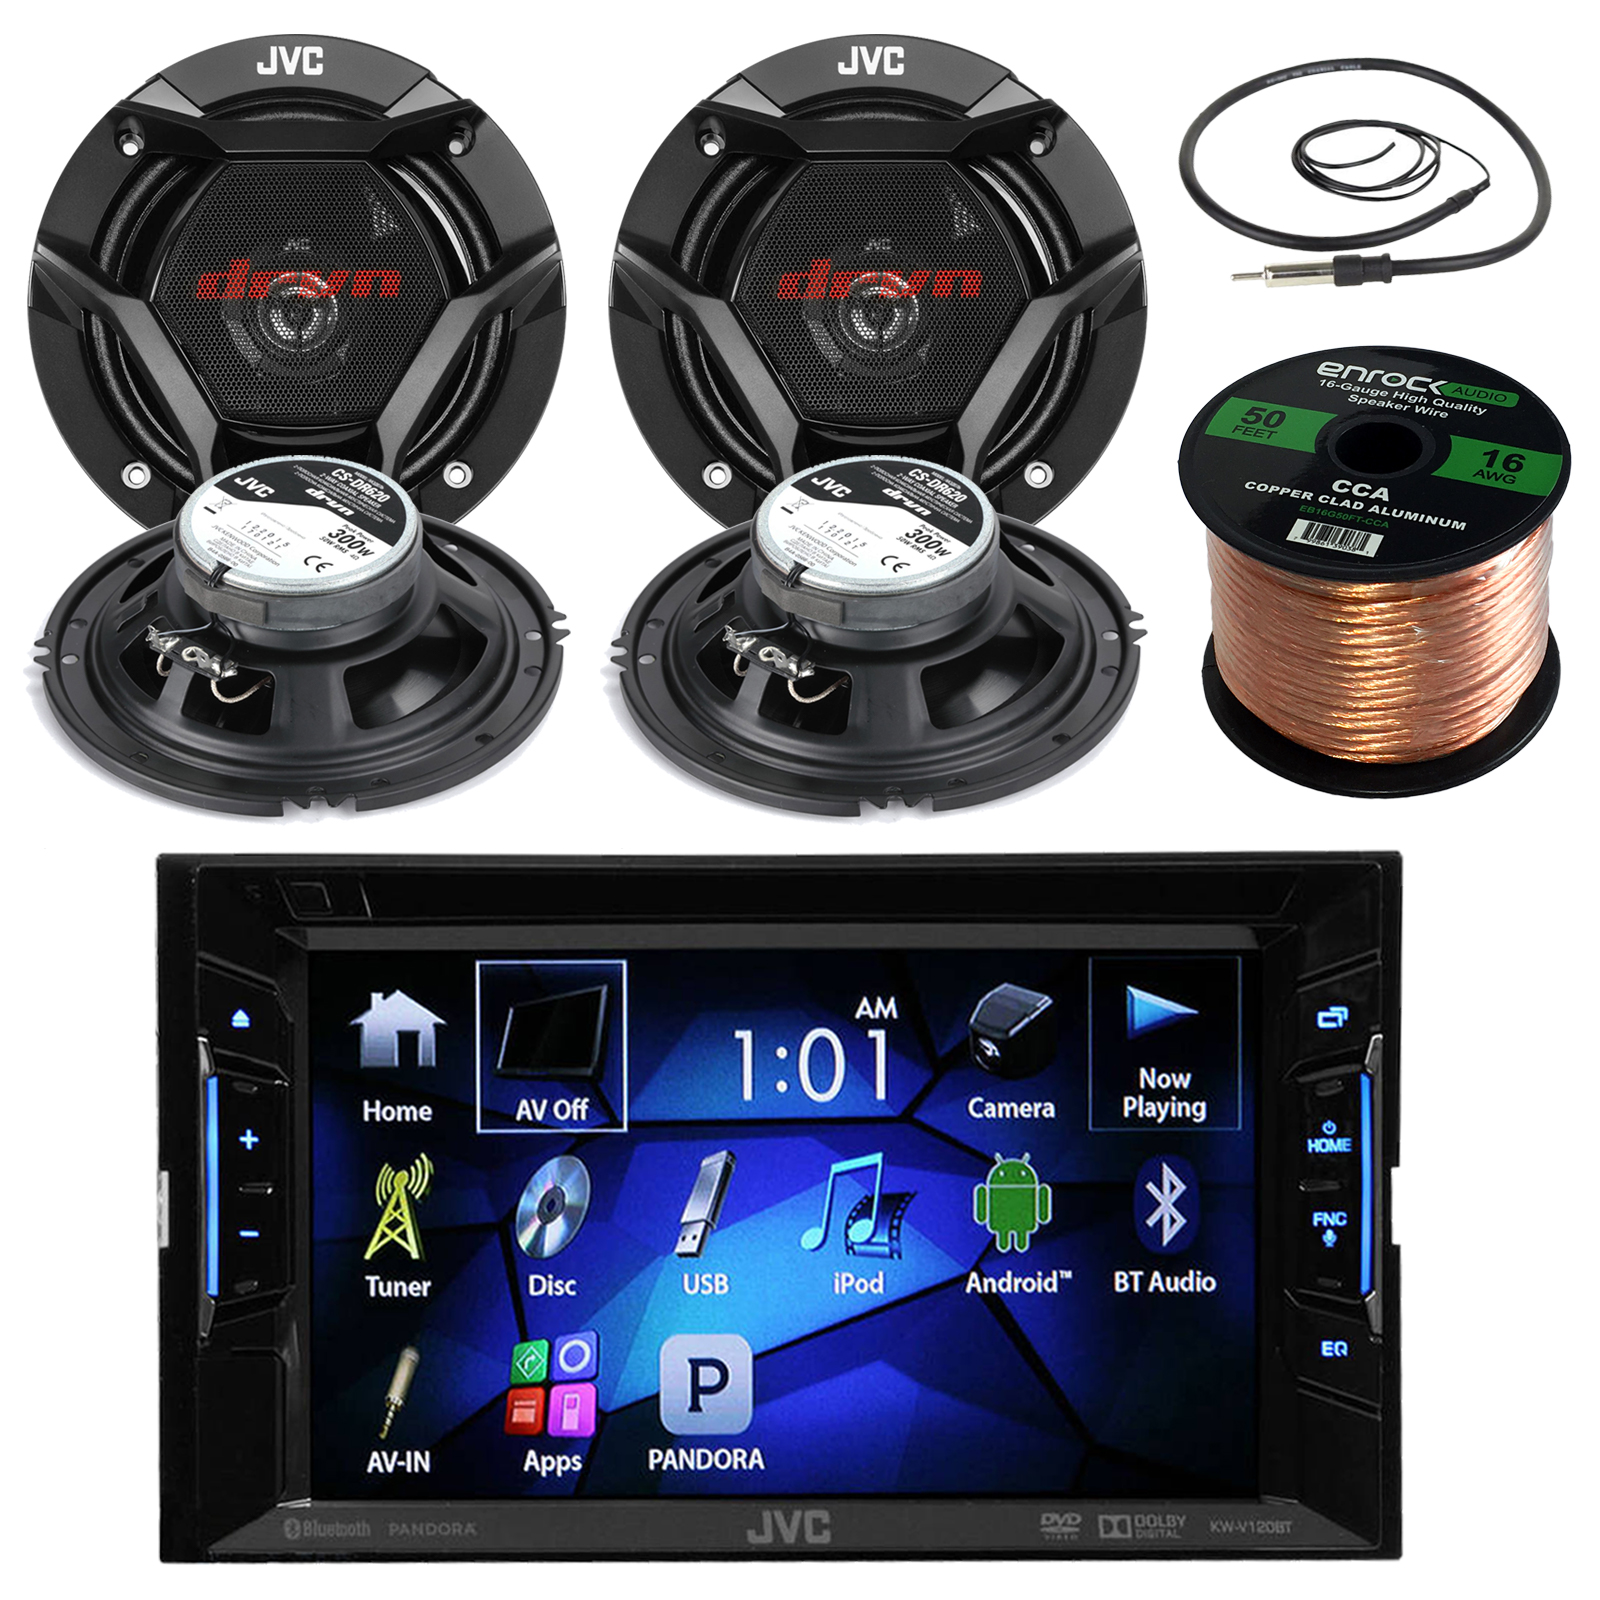 "JVC KWV140BT 6.2"" Touch Screen Car CD/DVD Bluetooth Receiver Bundle Combo With 4x CS-DR620 6.5"" Inch 300 Watt 2-Way Audio Coaxial Speakers + Enrock 22"" AM/FM Antenna + 50 Foot 16 Gauge Speaker Wire"